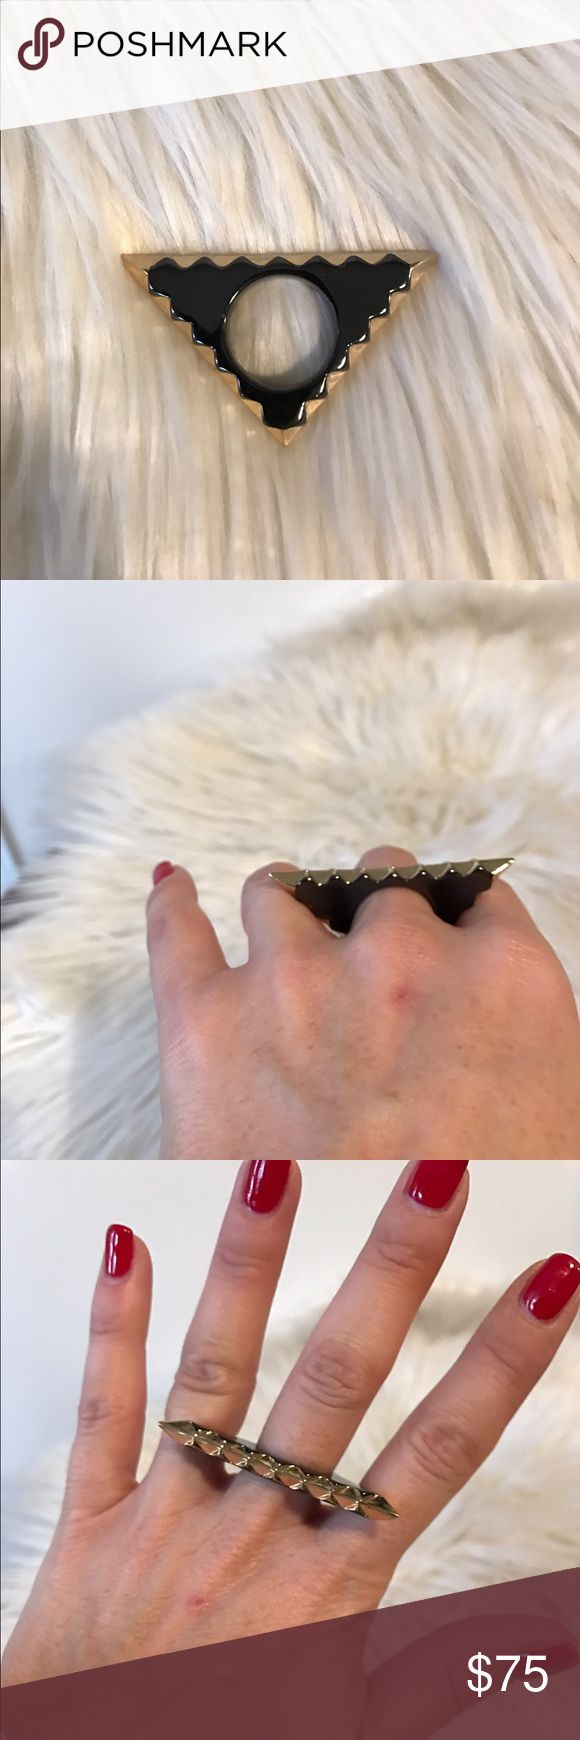 NWOT House of Harlow Aztec Ring NWOT House of Harlow Gold and Black Aztec Triangle Ring with spiked top. House of Harlow 1960 Jewelry Rings